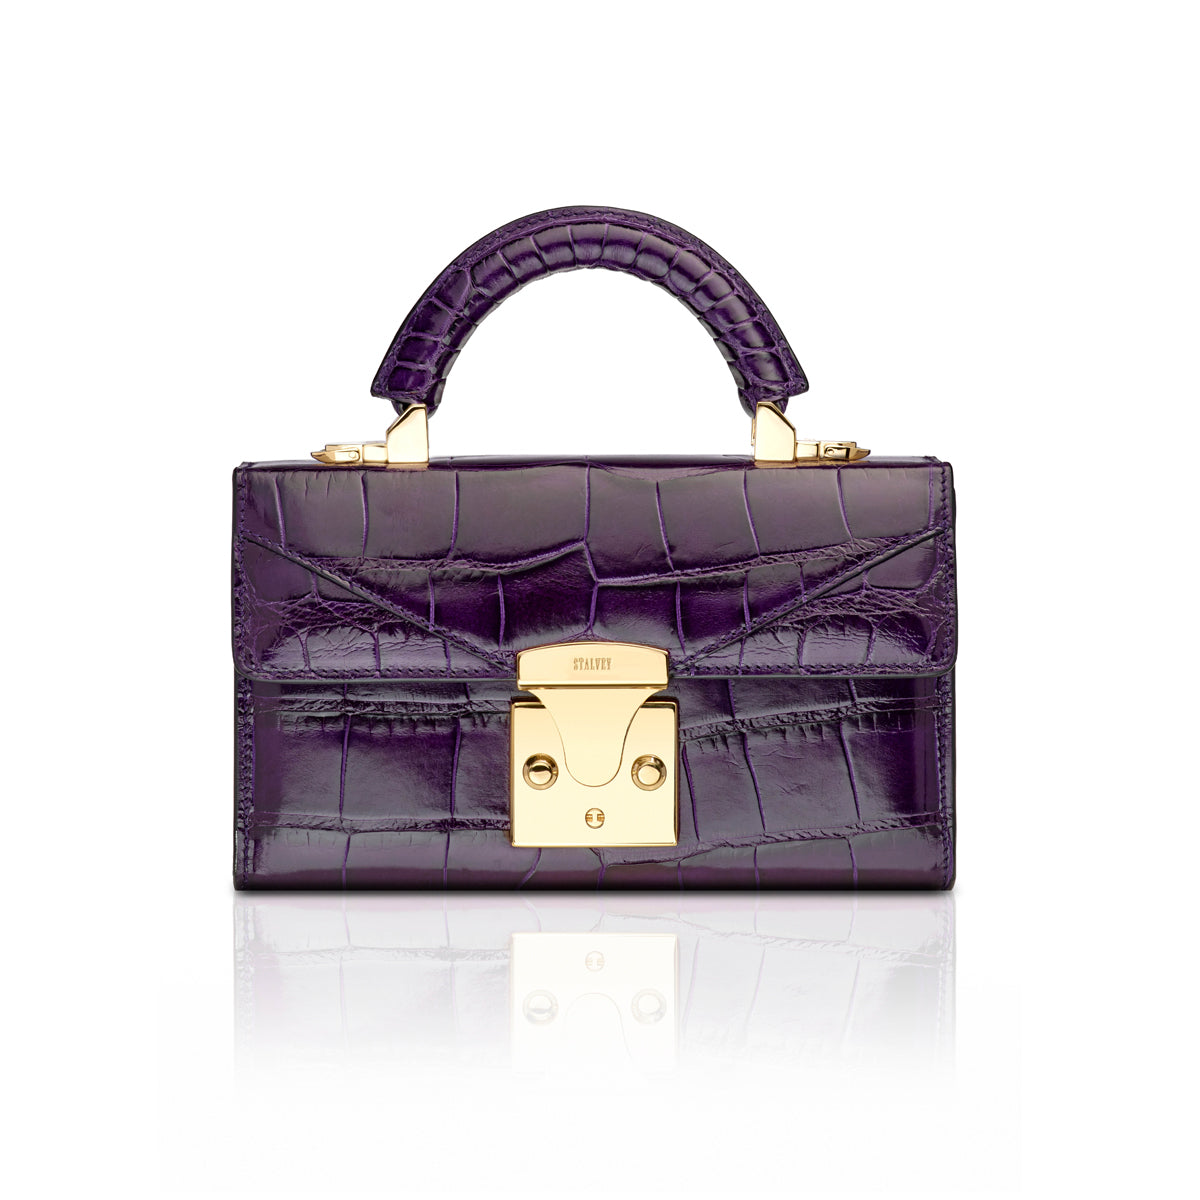 Top Handle 2.0 Mini - Plum Alligator